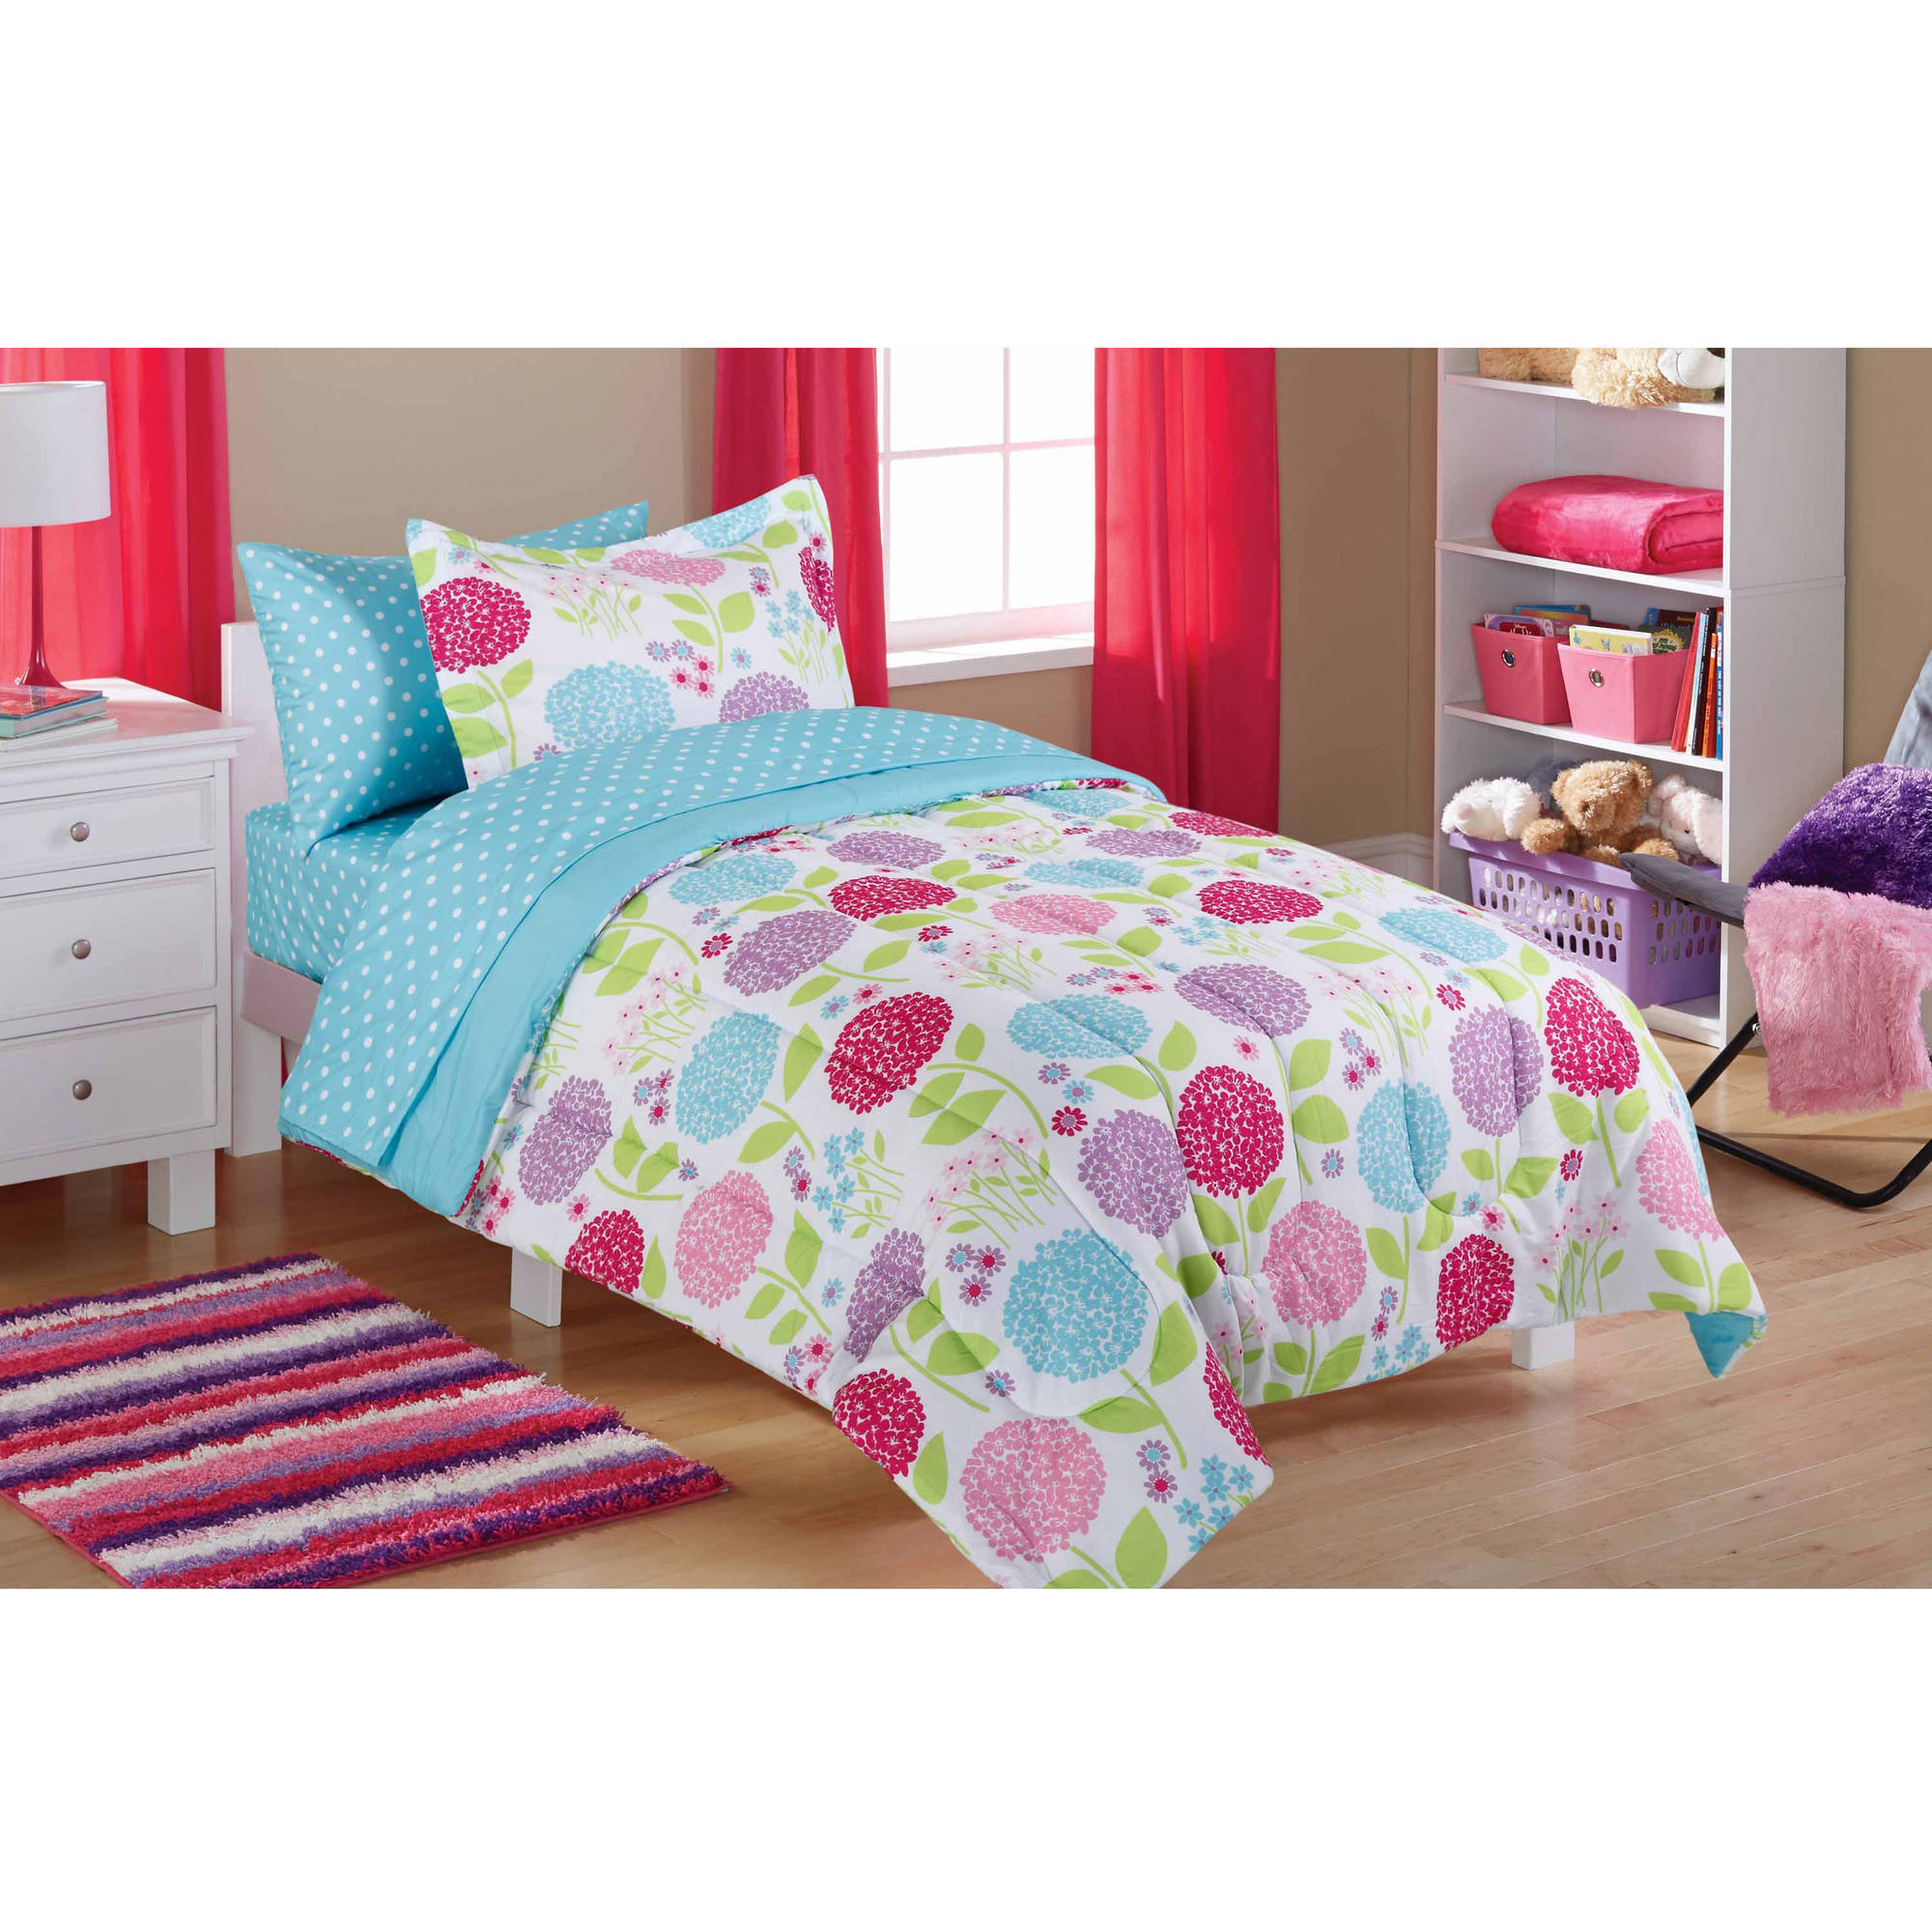 kids size pics pink ideas chevron trends sheets a twin of in bed bag and best piece sets the bedding queen for inspiring to bedroom where set